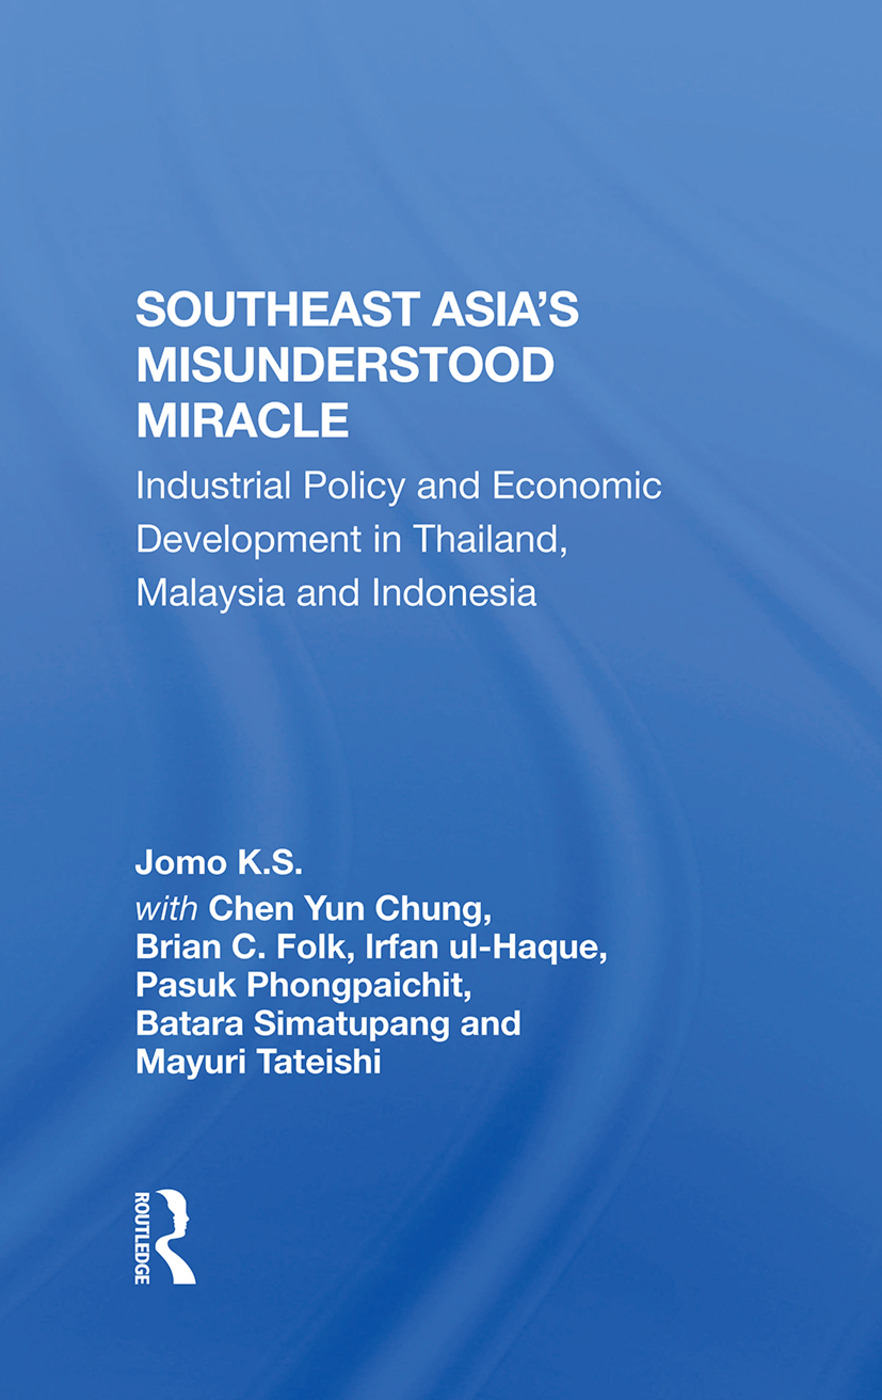 Southeast Asia's Misunderstood Miracle: Industrial Policy And Economic Development In Thailand, Malaysia And Indonesia book cover